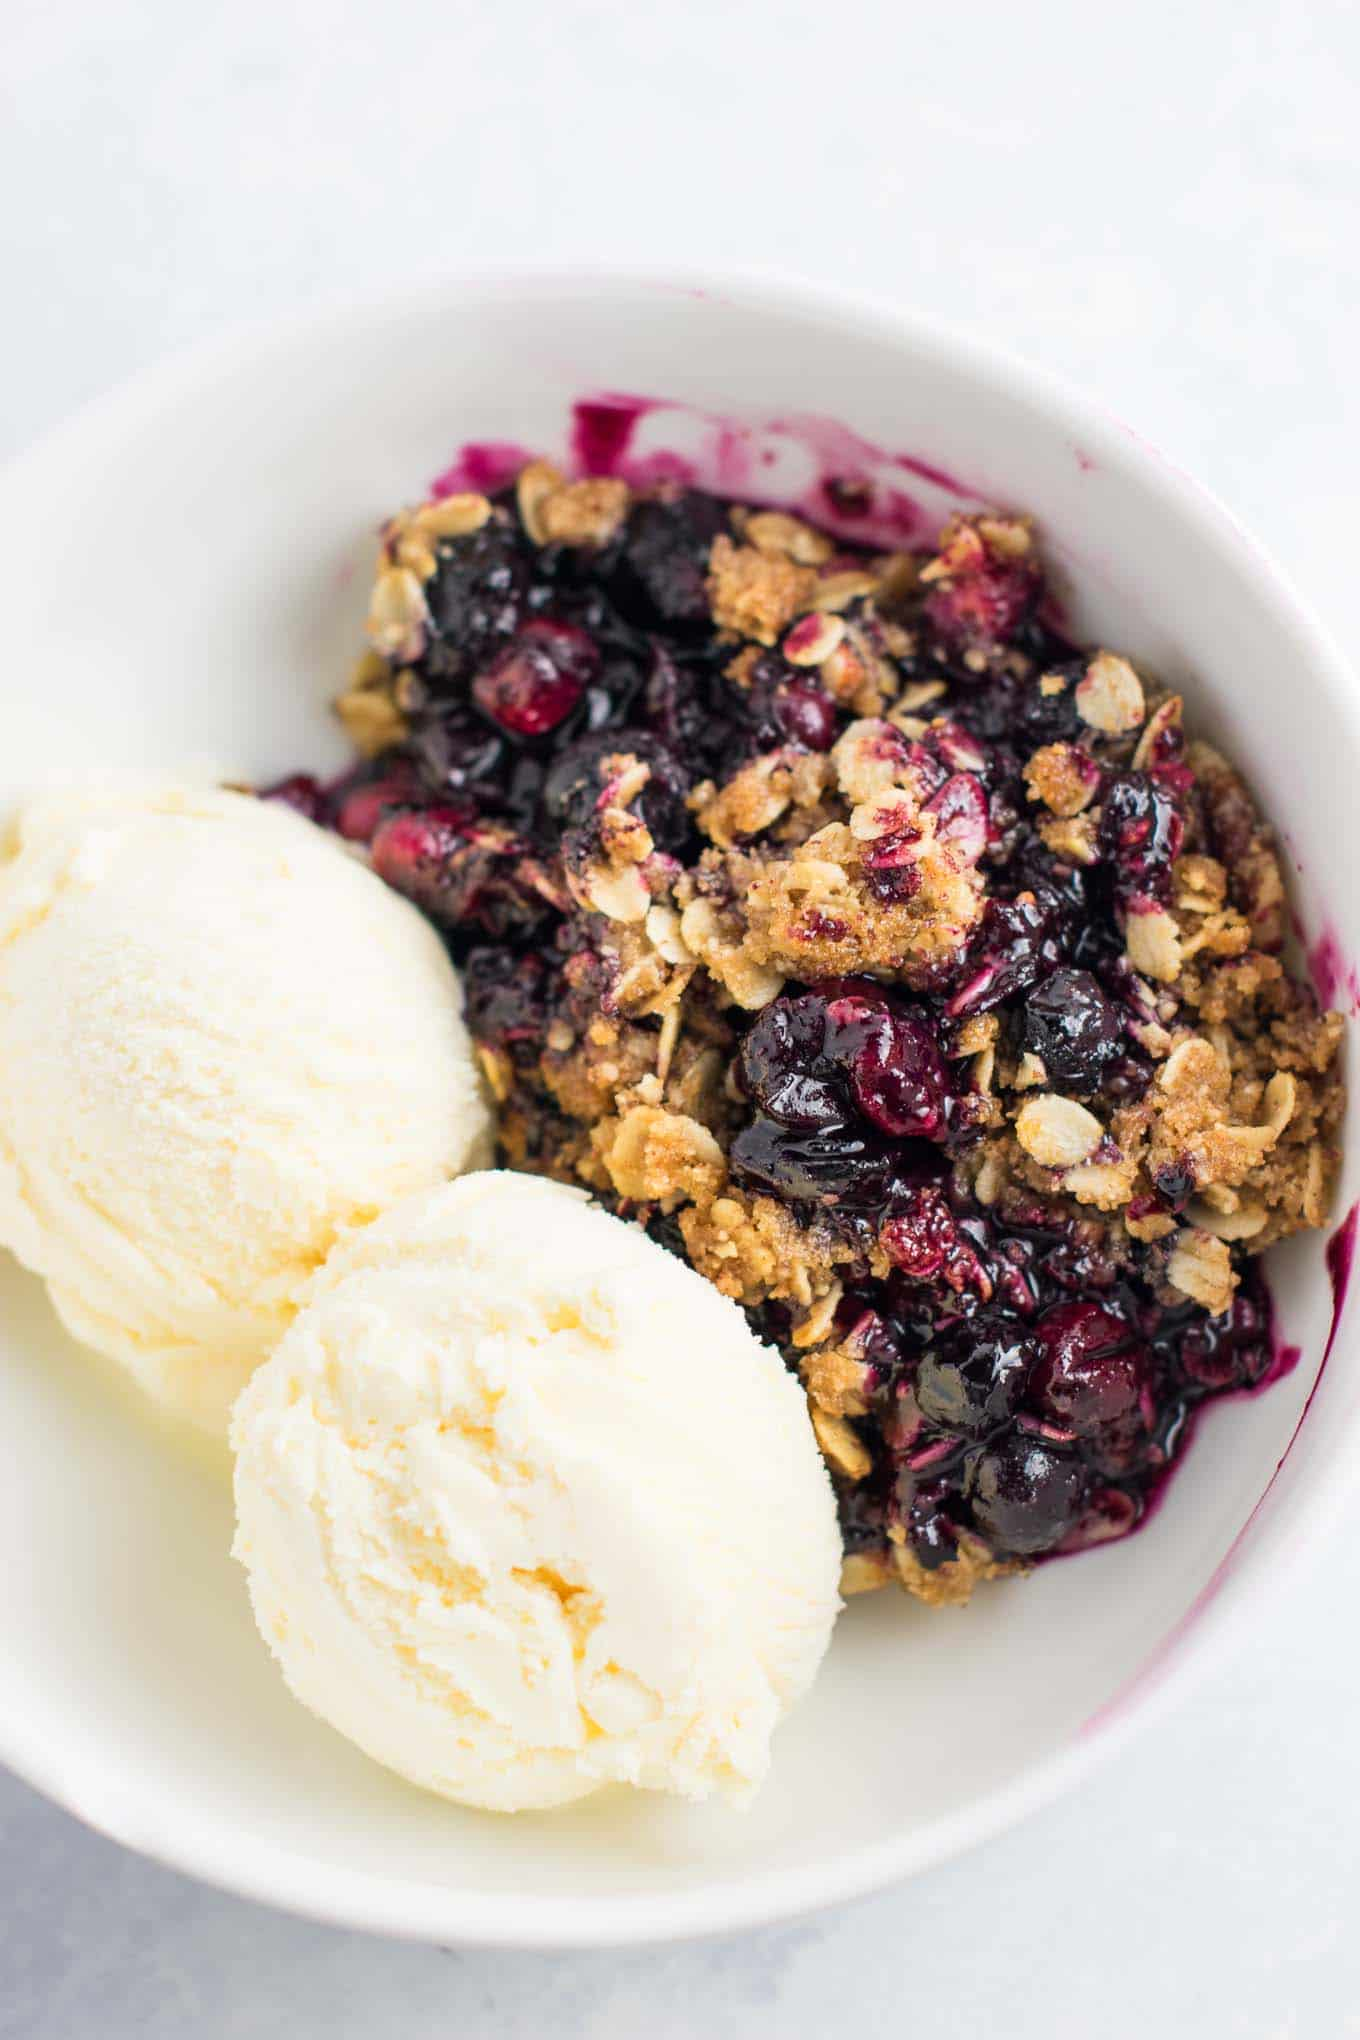 This Cranberry Blueberry Crisp recipe is packed full of flavor and ready for the oven in less than 15 minutes! Gluten free and vegan. #cranberryblueberrycrisp #cranberry #dessert #vegan #glutenfree